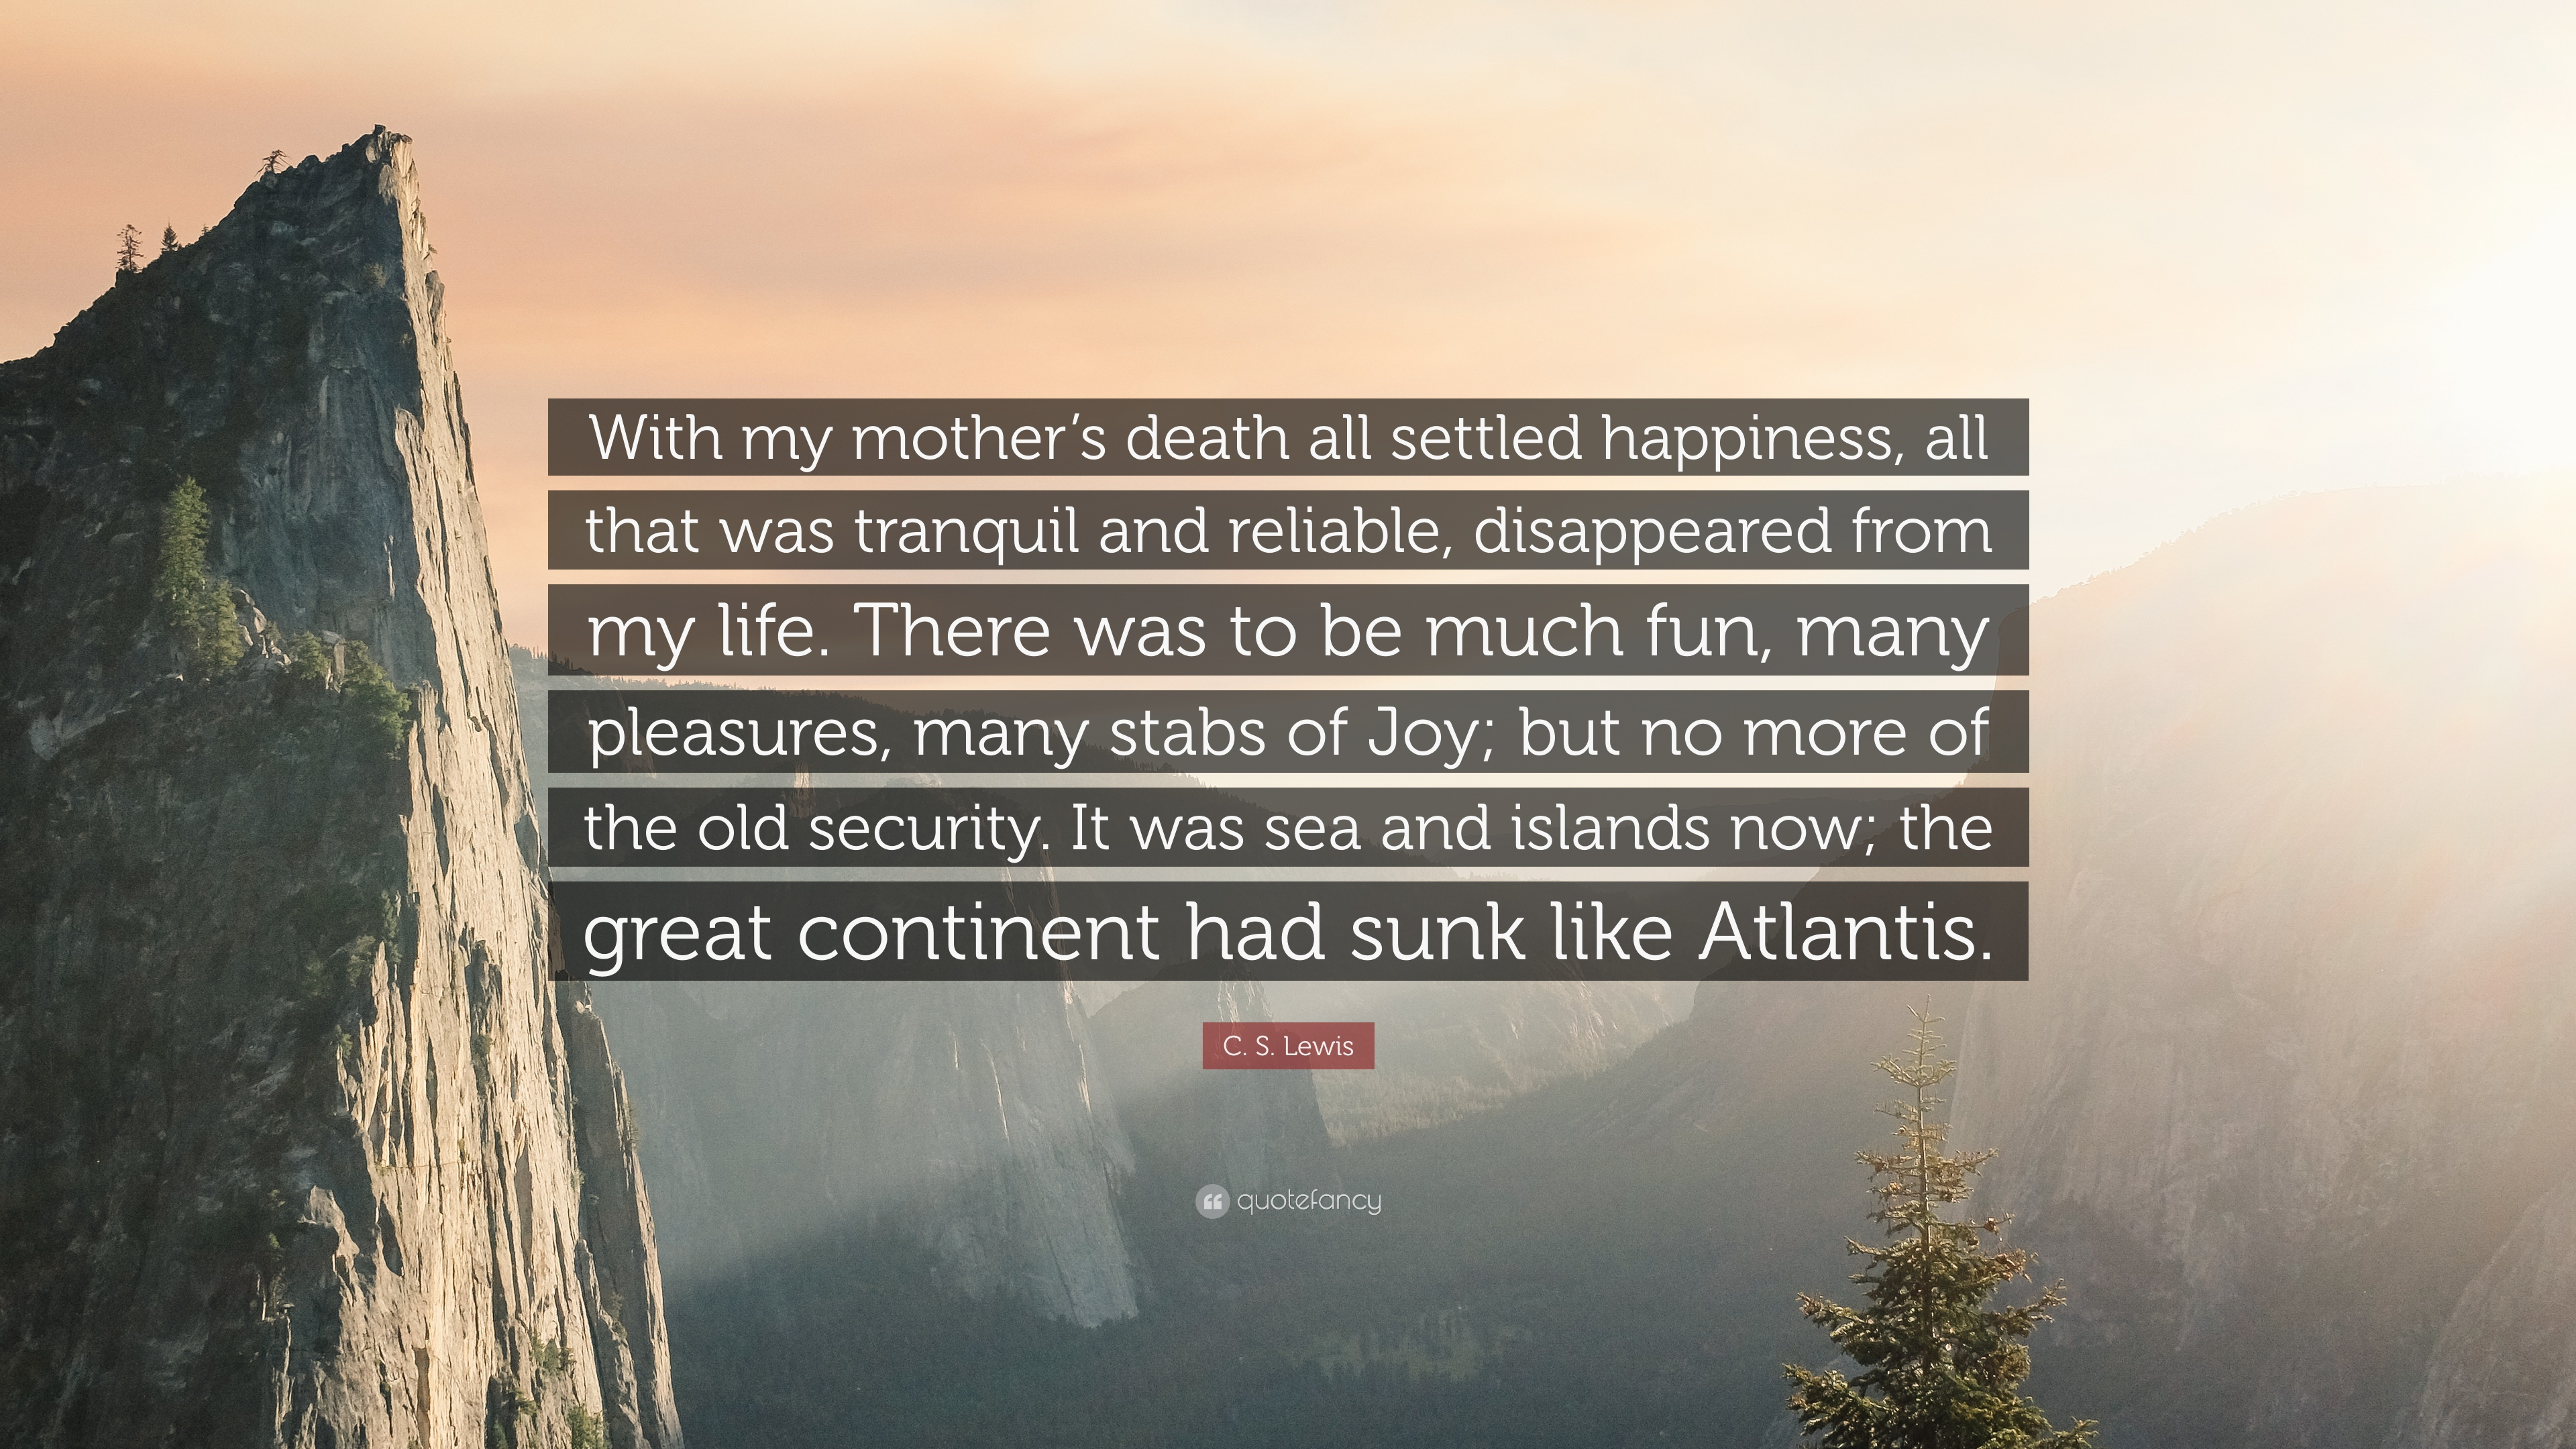 C S Lewis Quote With My Mothers Death All Settled Happiness